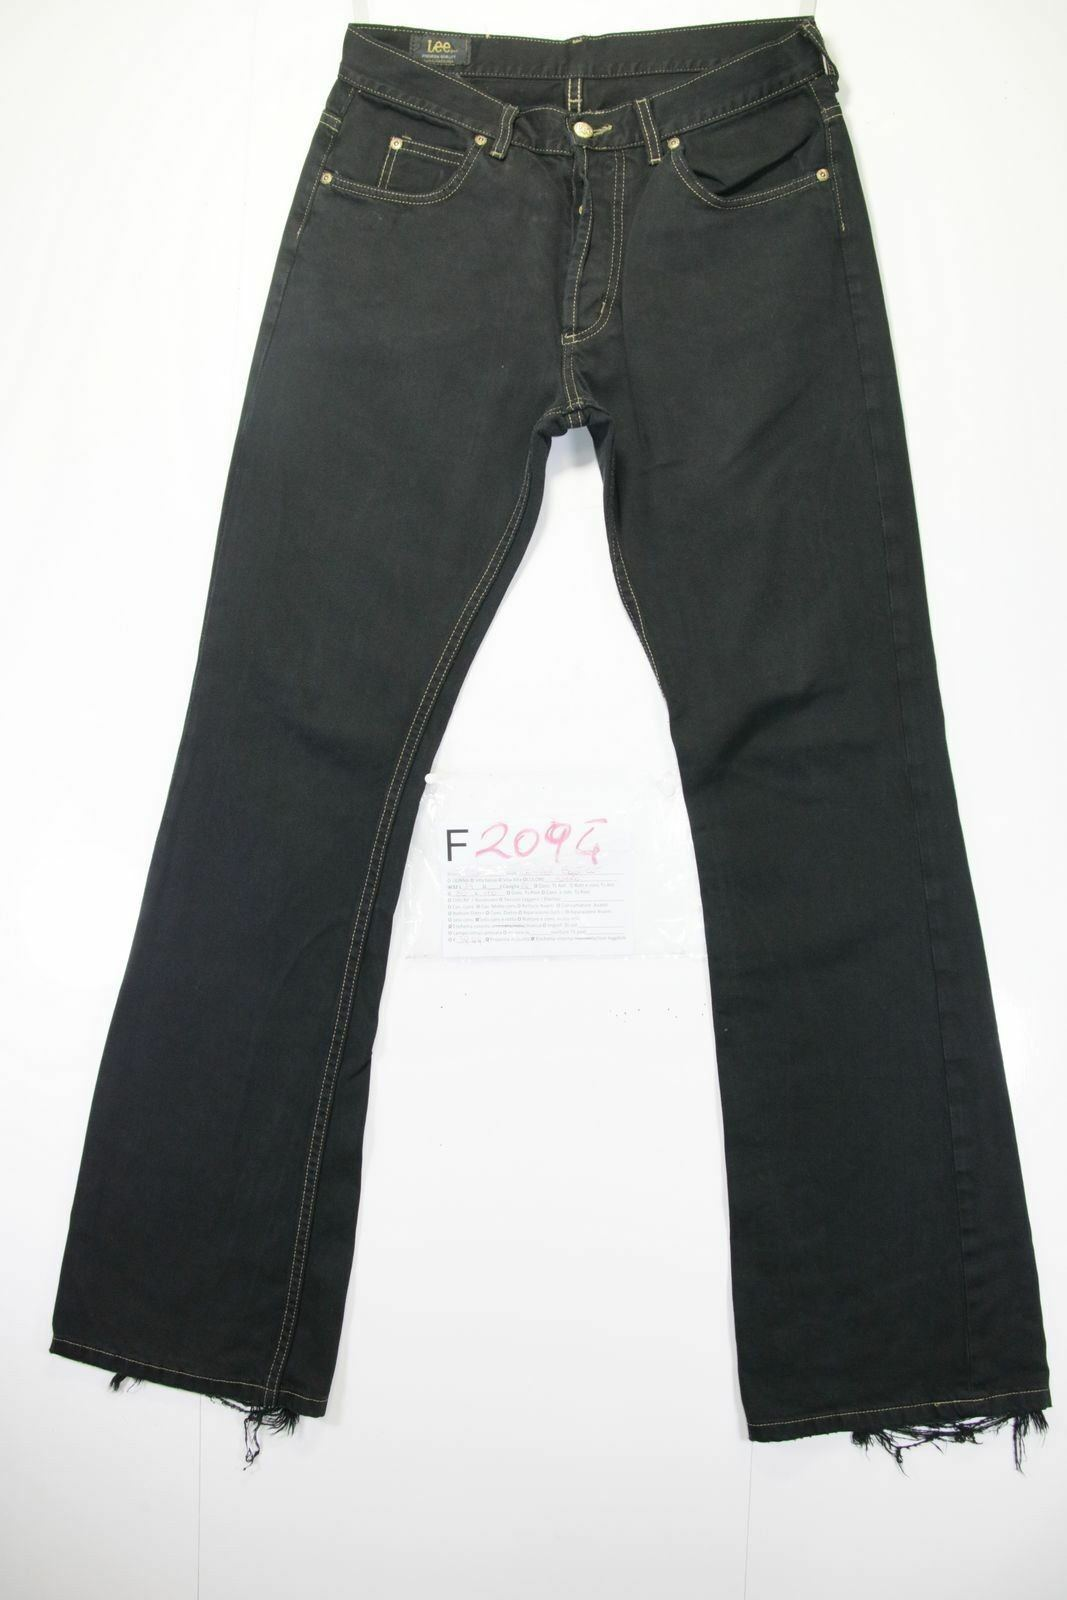 Lee Denver Bootcut ( Cod. F2094) Tg46 W32 L34 Jeans Used High Waist Flare